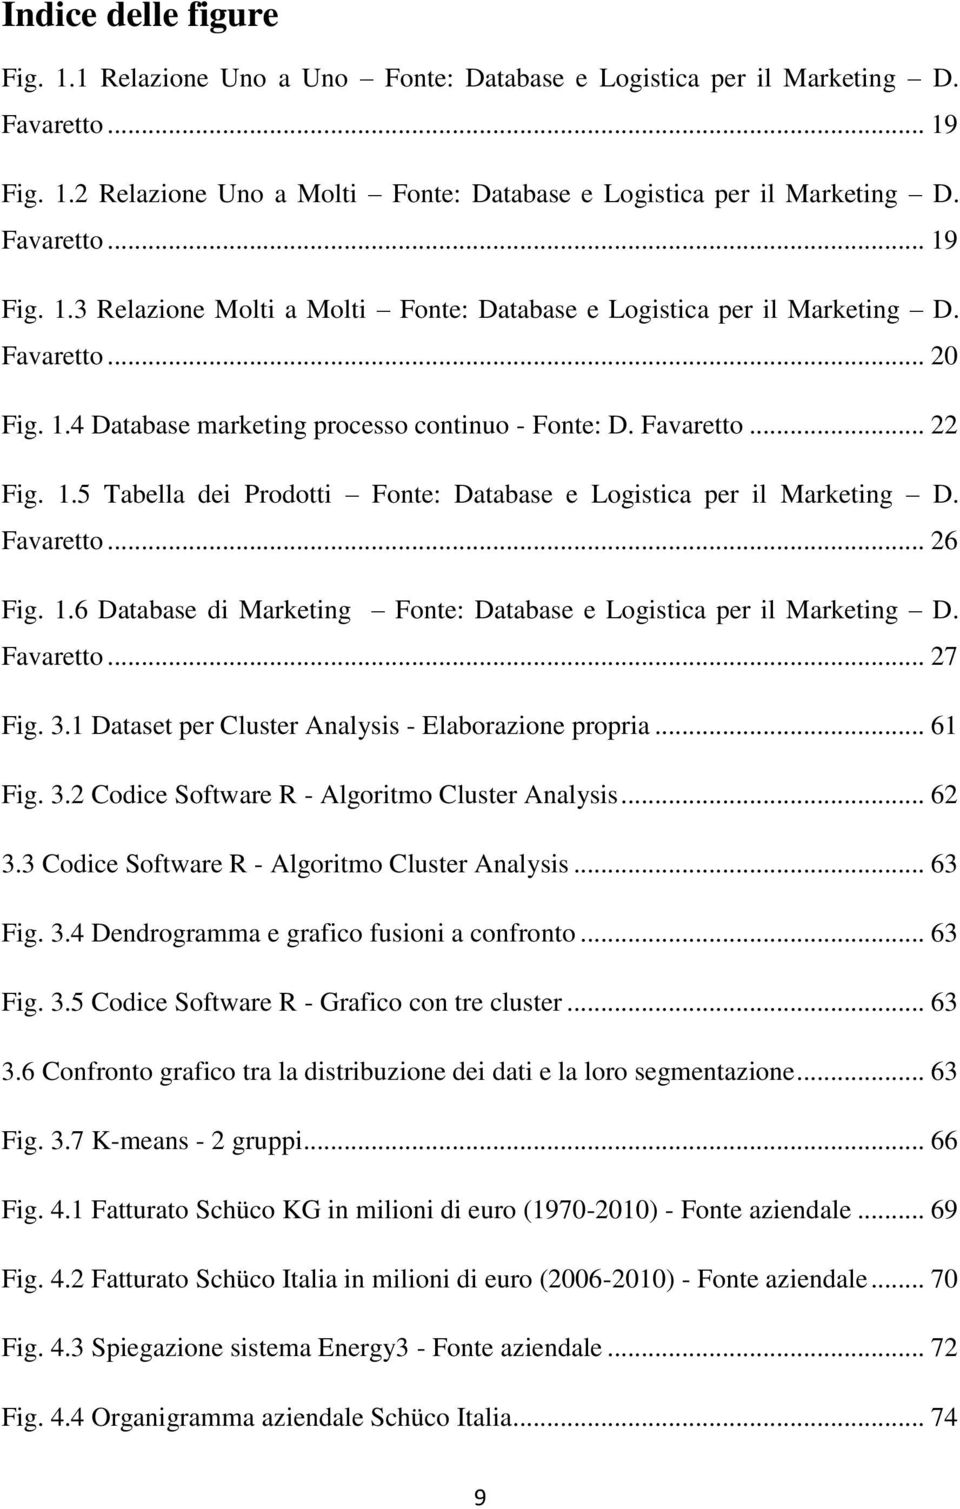 Favaretto... 26 Fig. 1.6 Database di Marketing Fonte: Database e Logistica per il Marketing D. Favaretto... 27 Fig. 3.1 Dataset per Cluster Analysis - Elaborazione propria... 61 Fig. 3.2 Codice Software R - Algoritmo Cluster Analysis.